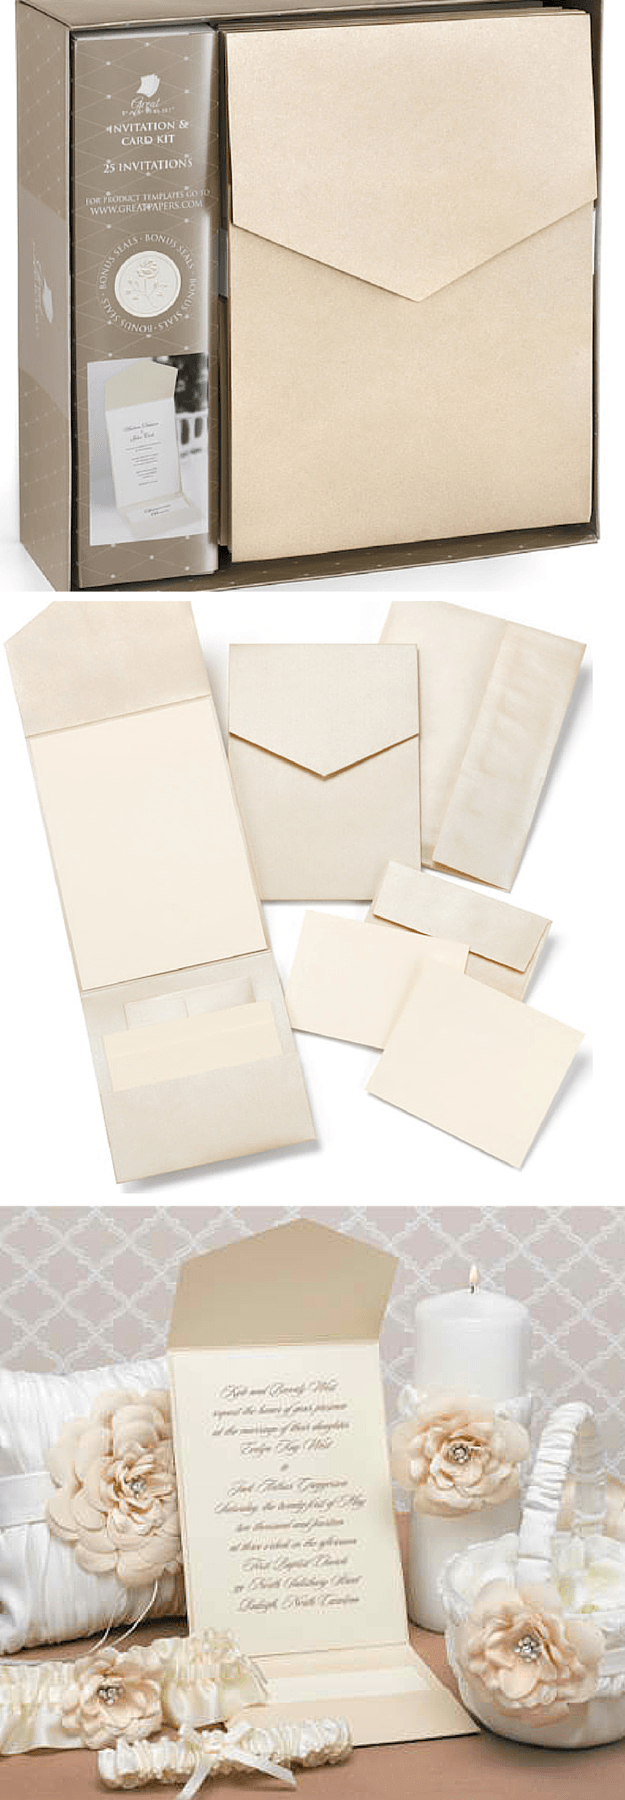 Diy Wedding Invitations Kits Custom Wedding Invitation Kits Diy Projects Craft Ideas How Tos